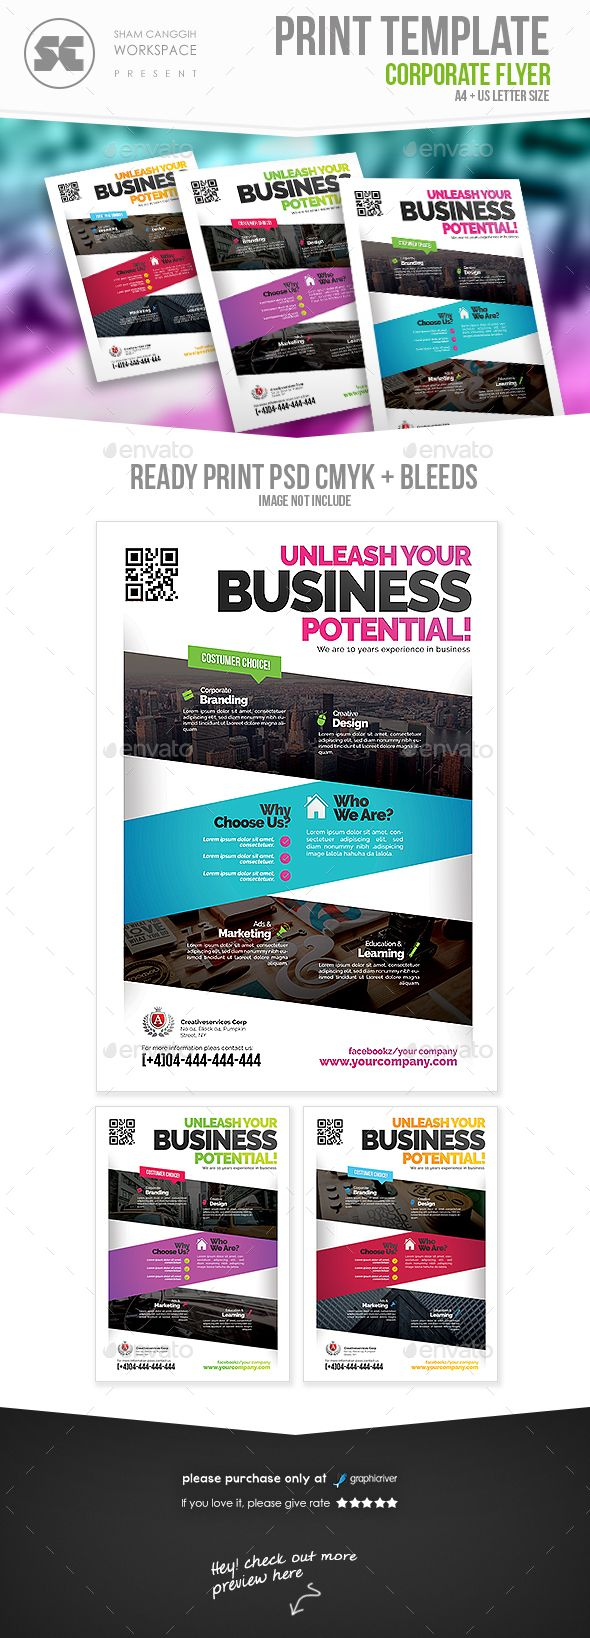 modern corporate flyer flyer template flyers and design templates modern corporate flyer design template corporate flyers design template psd here